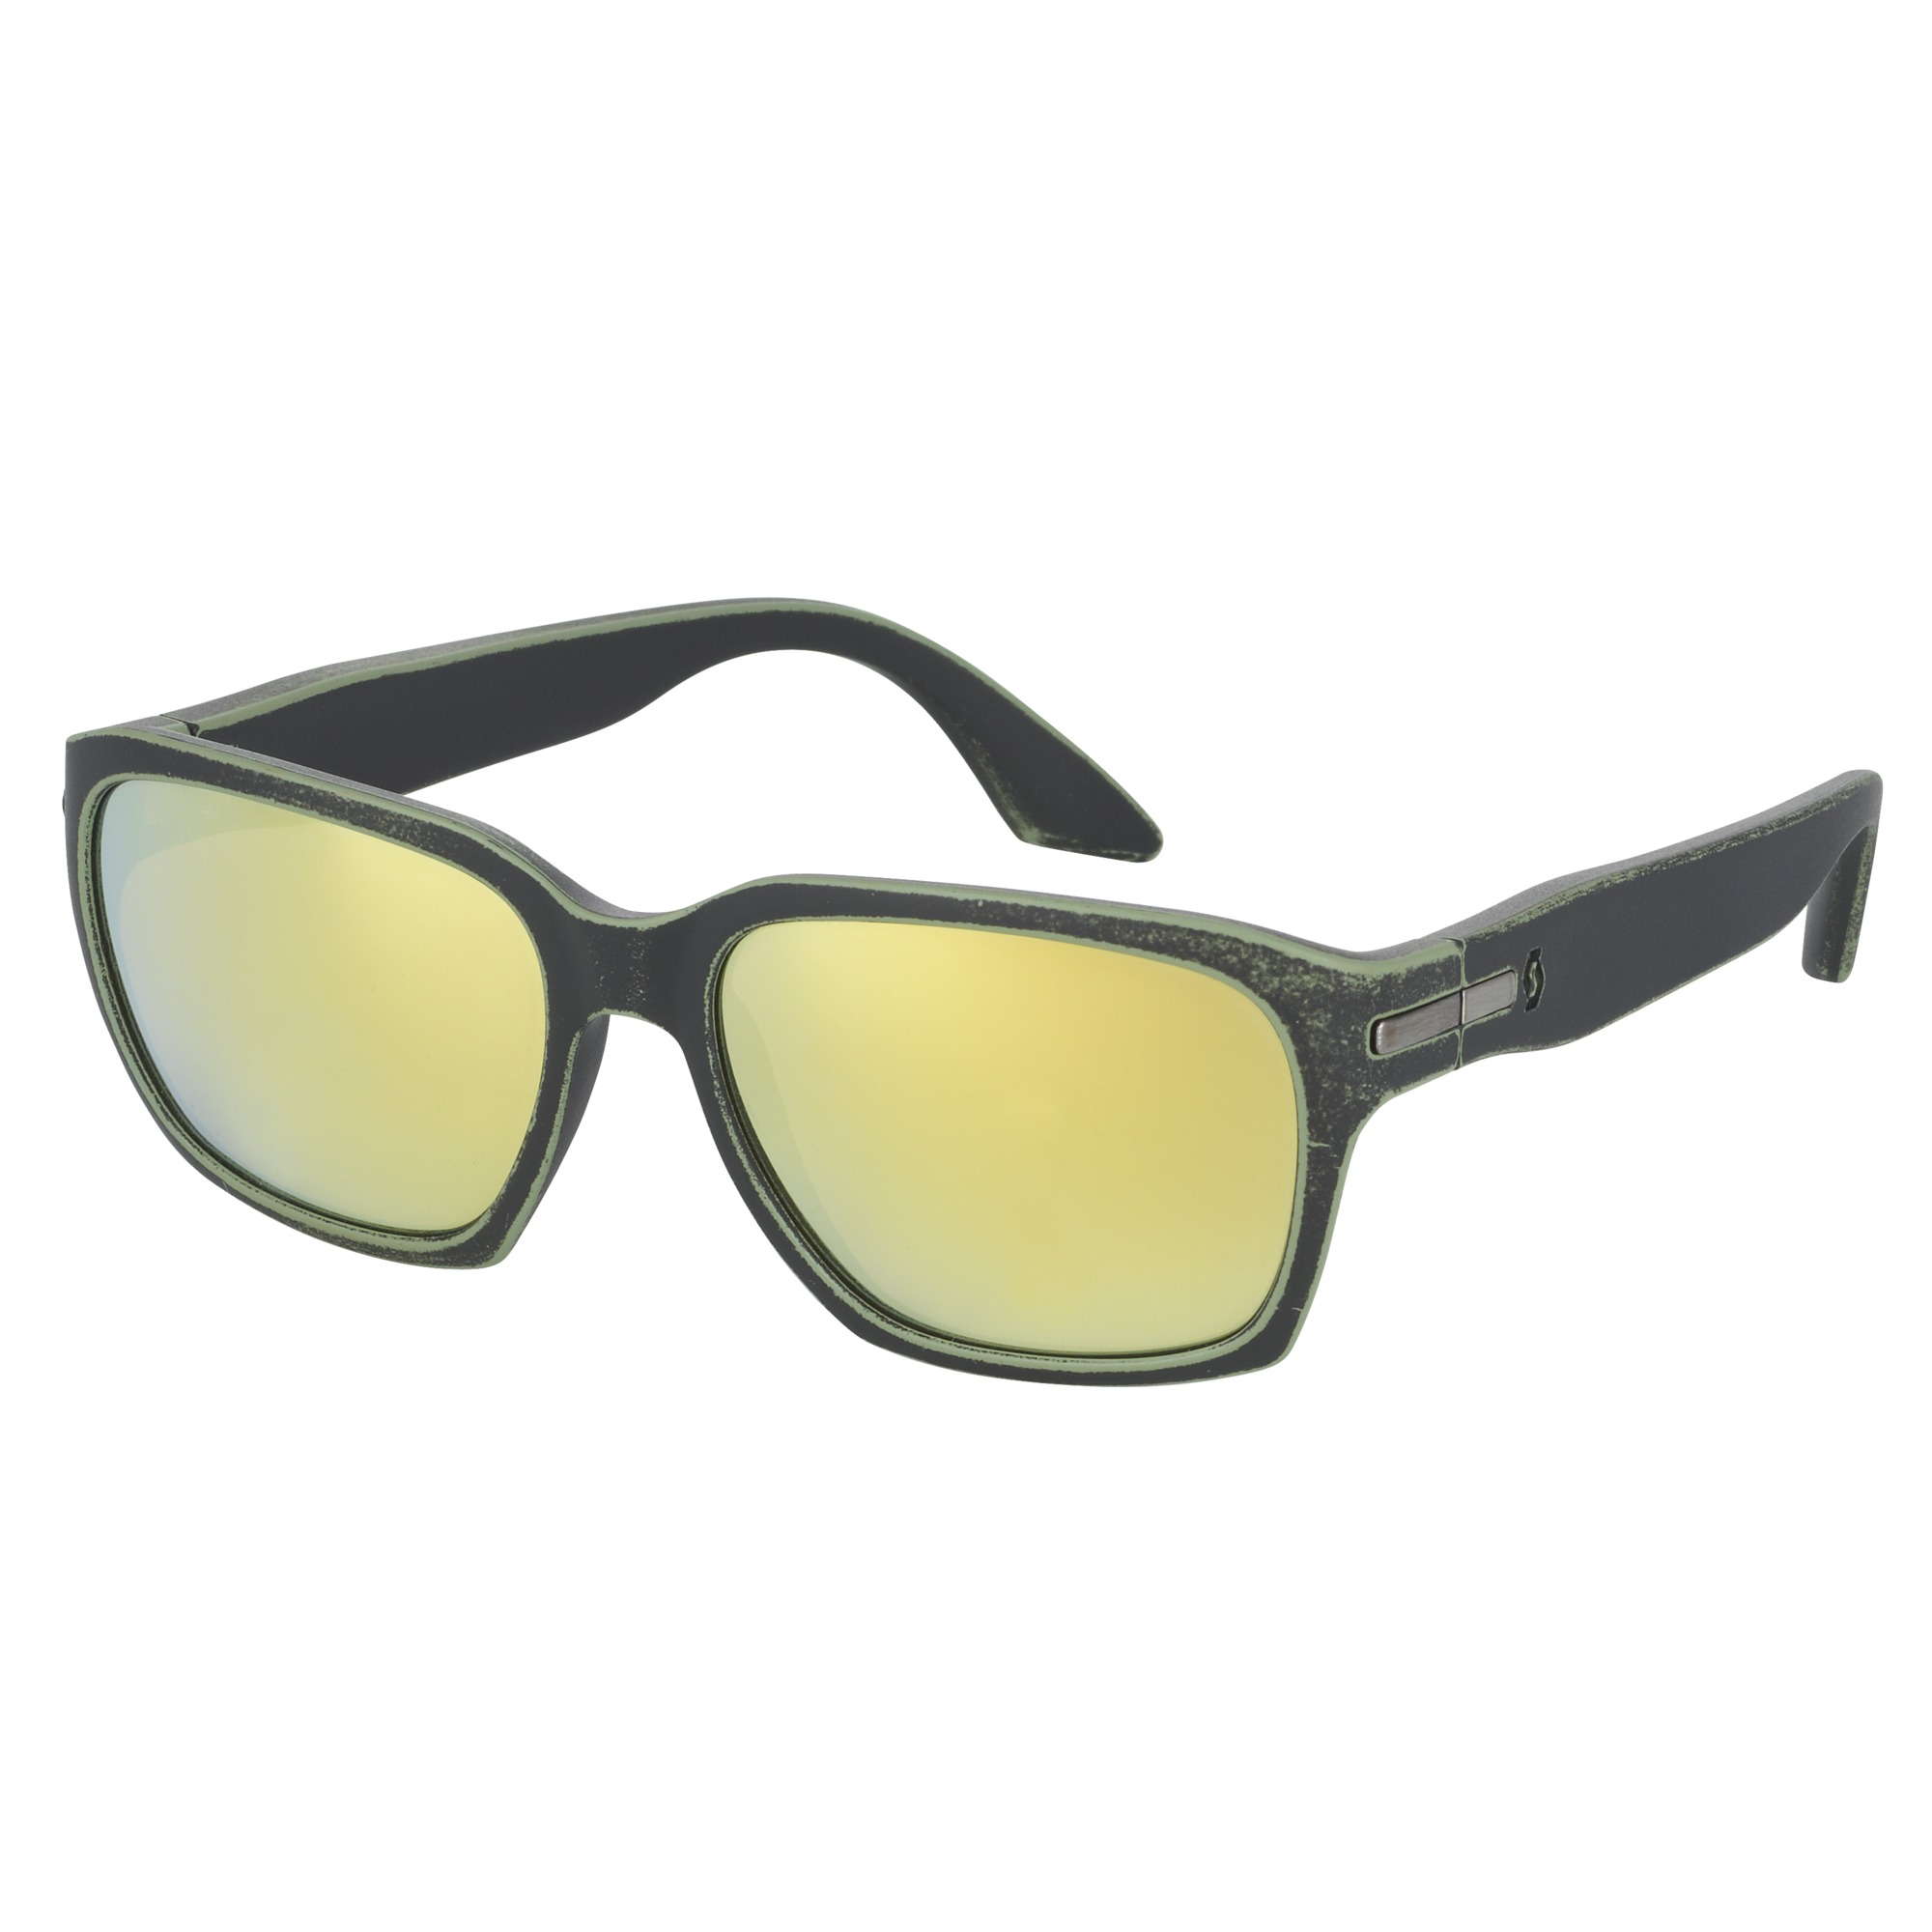 OCCHIALE SPORTIVO SCOTT C-NOTE SUNGLASSES 239321 OLIVE GREEN MATT GOLD.jpg